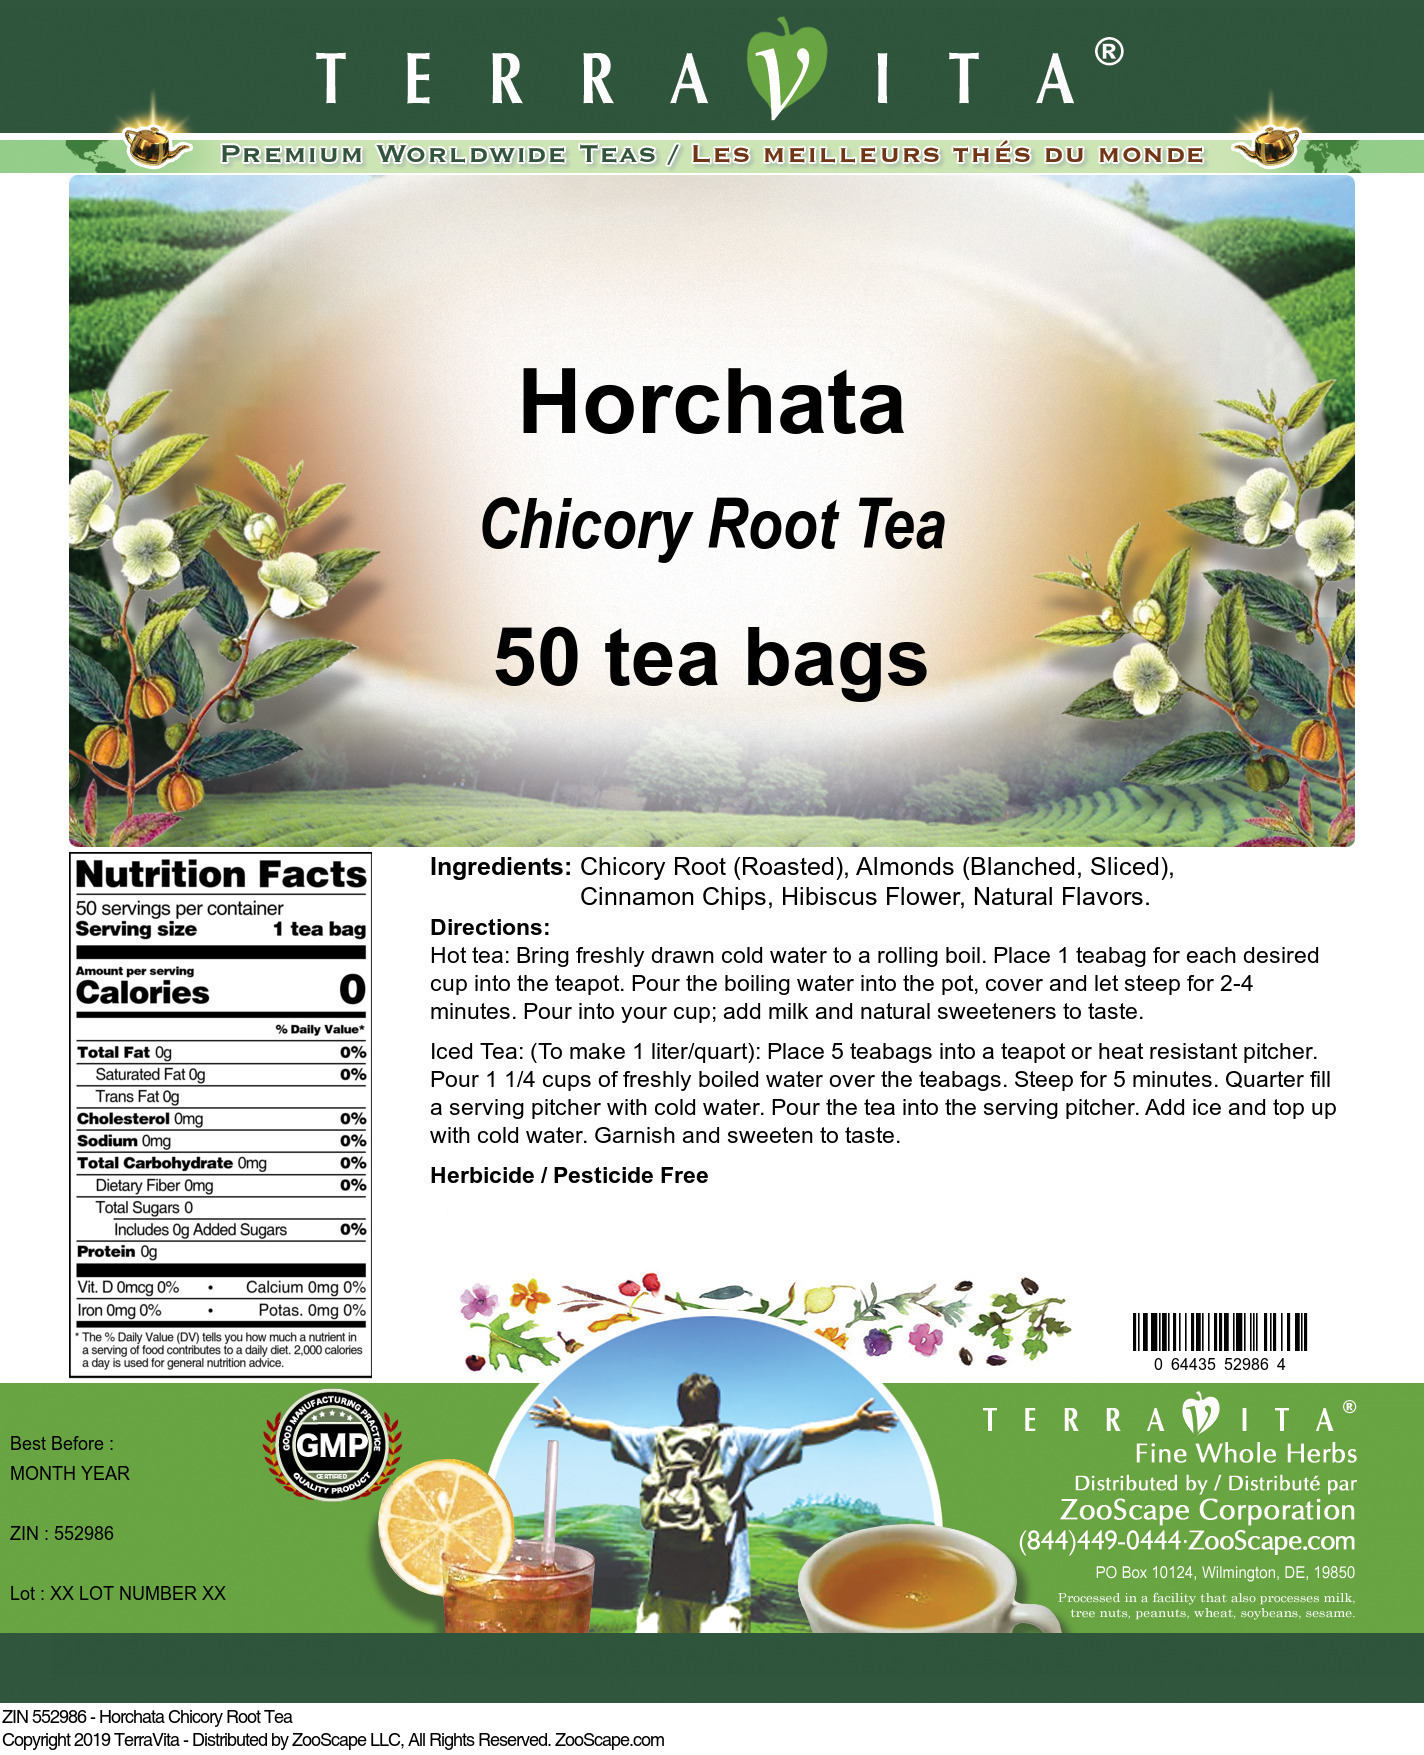 Horchata Chicory Root